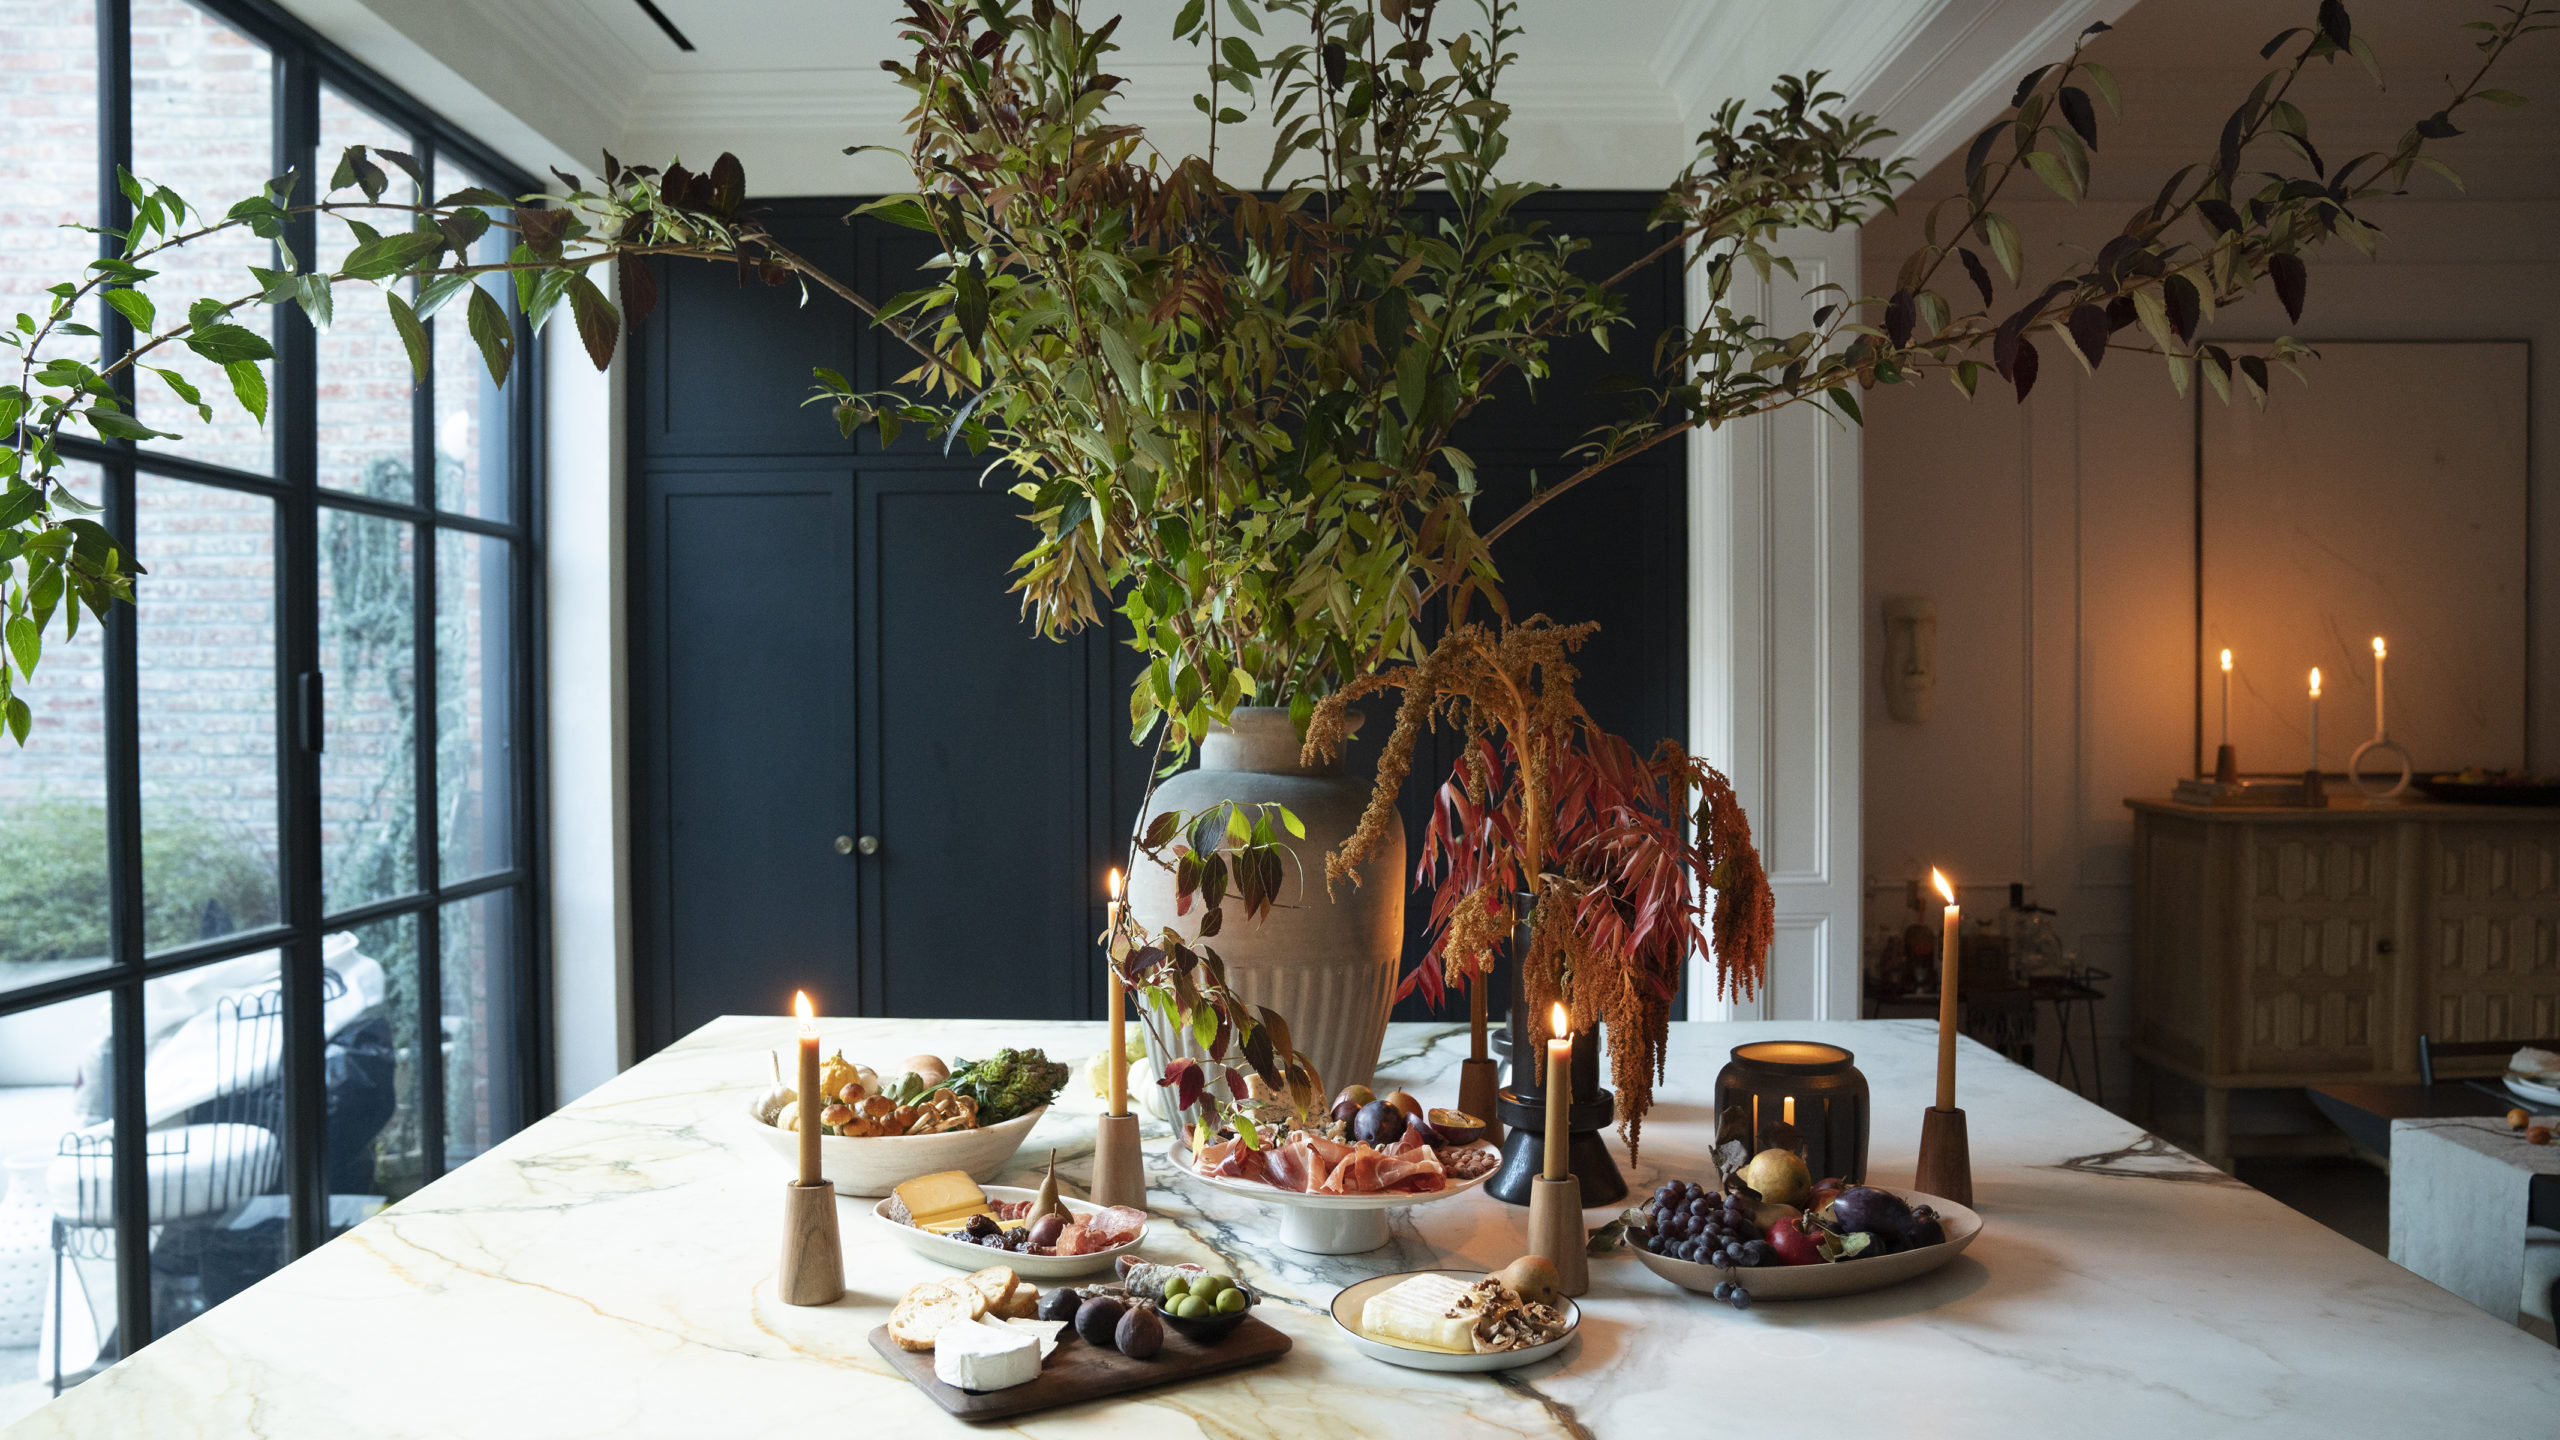 An Intimate Thanksgiving with Crate & Barrel